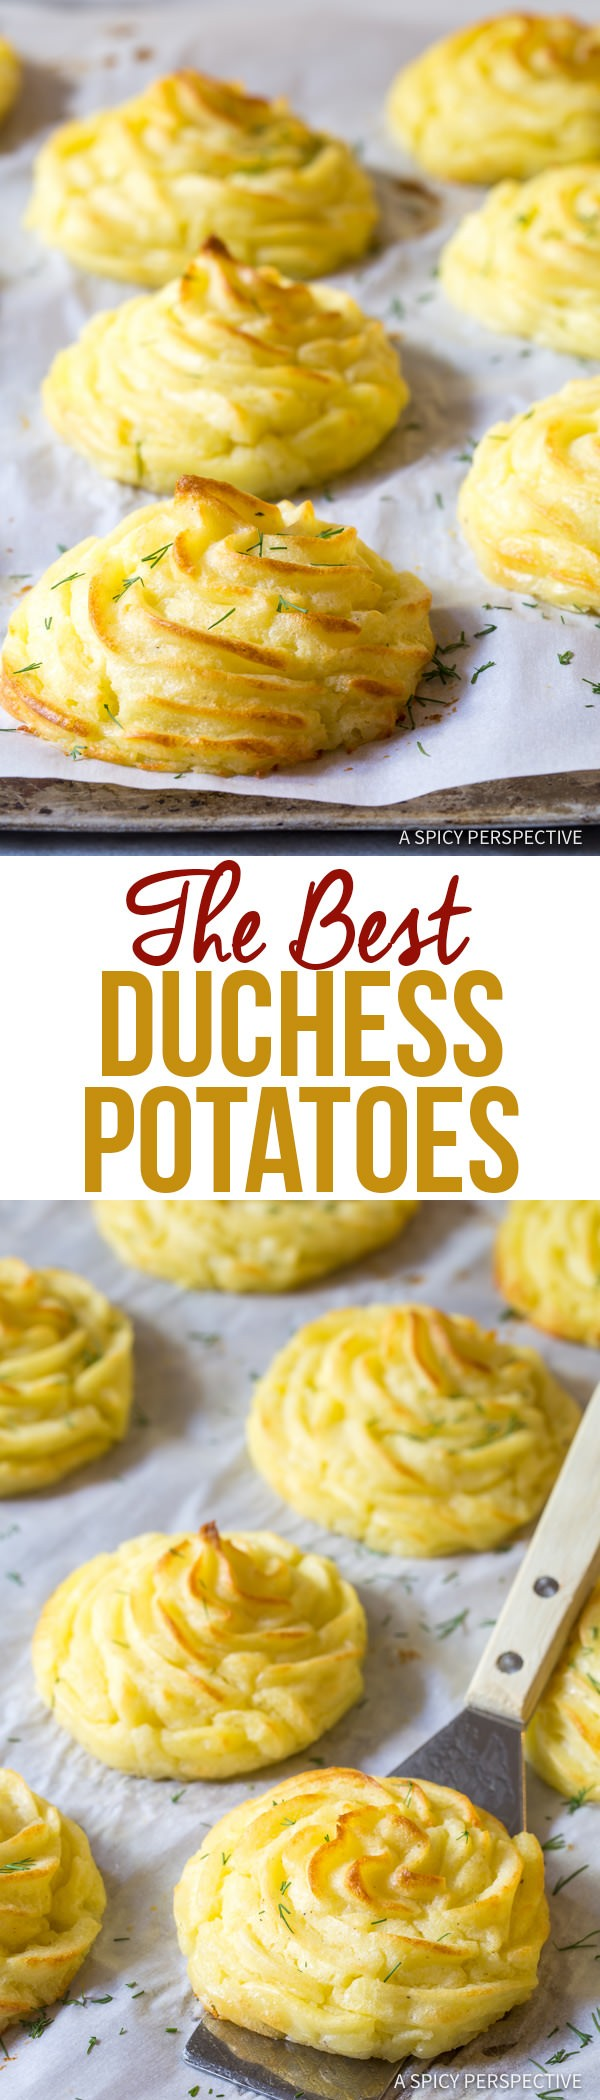 Get the recipe The Best Duchess Potatoes @recipes_to_go